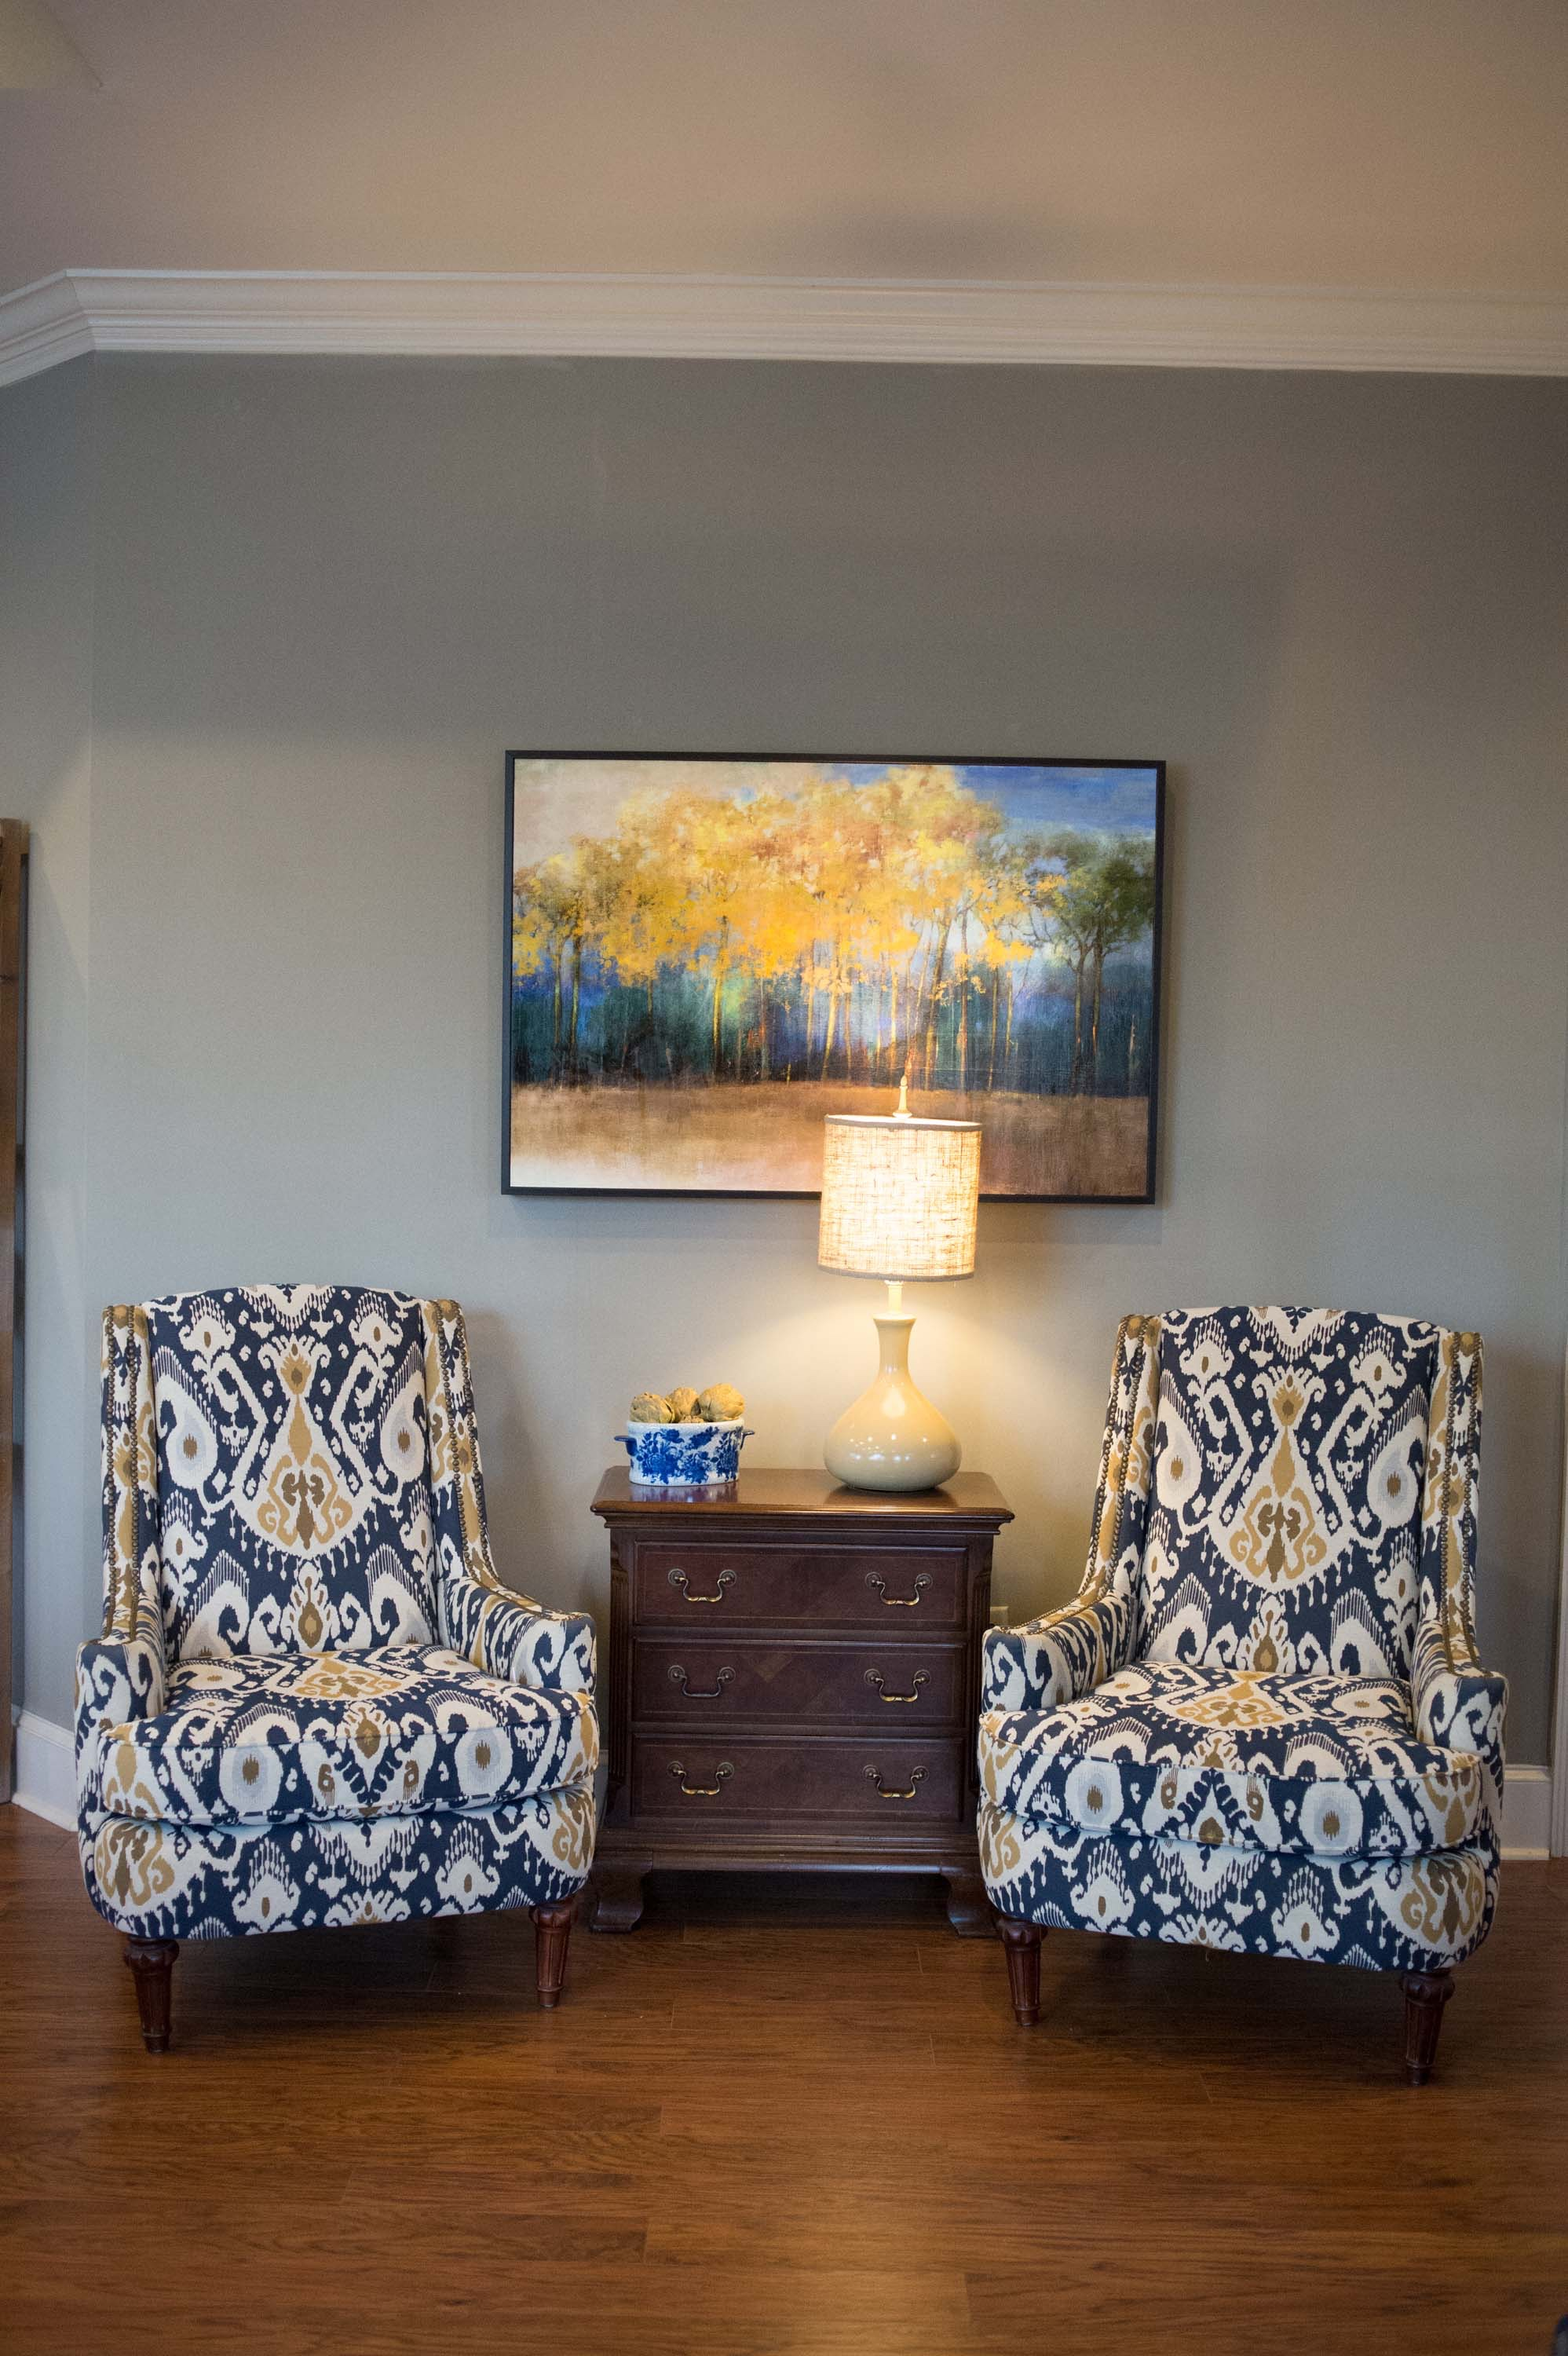 Upholstered armchair with artwork